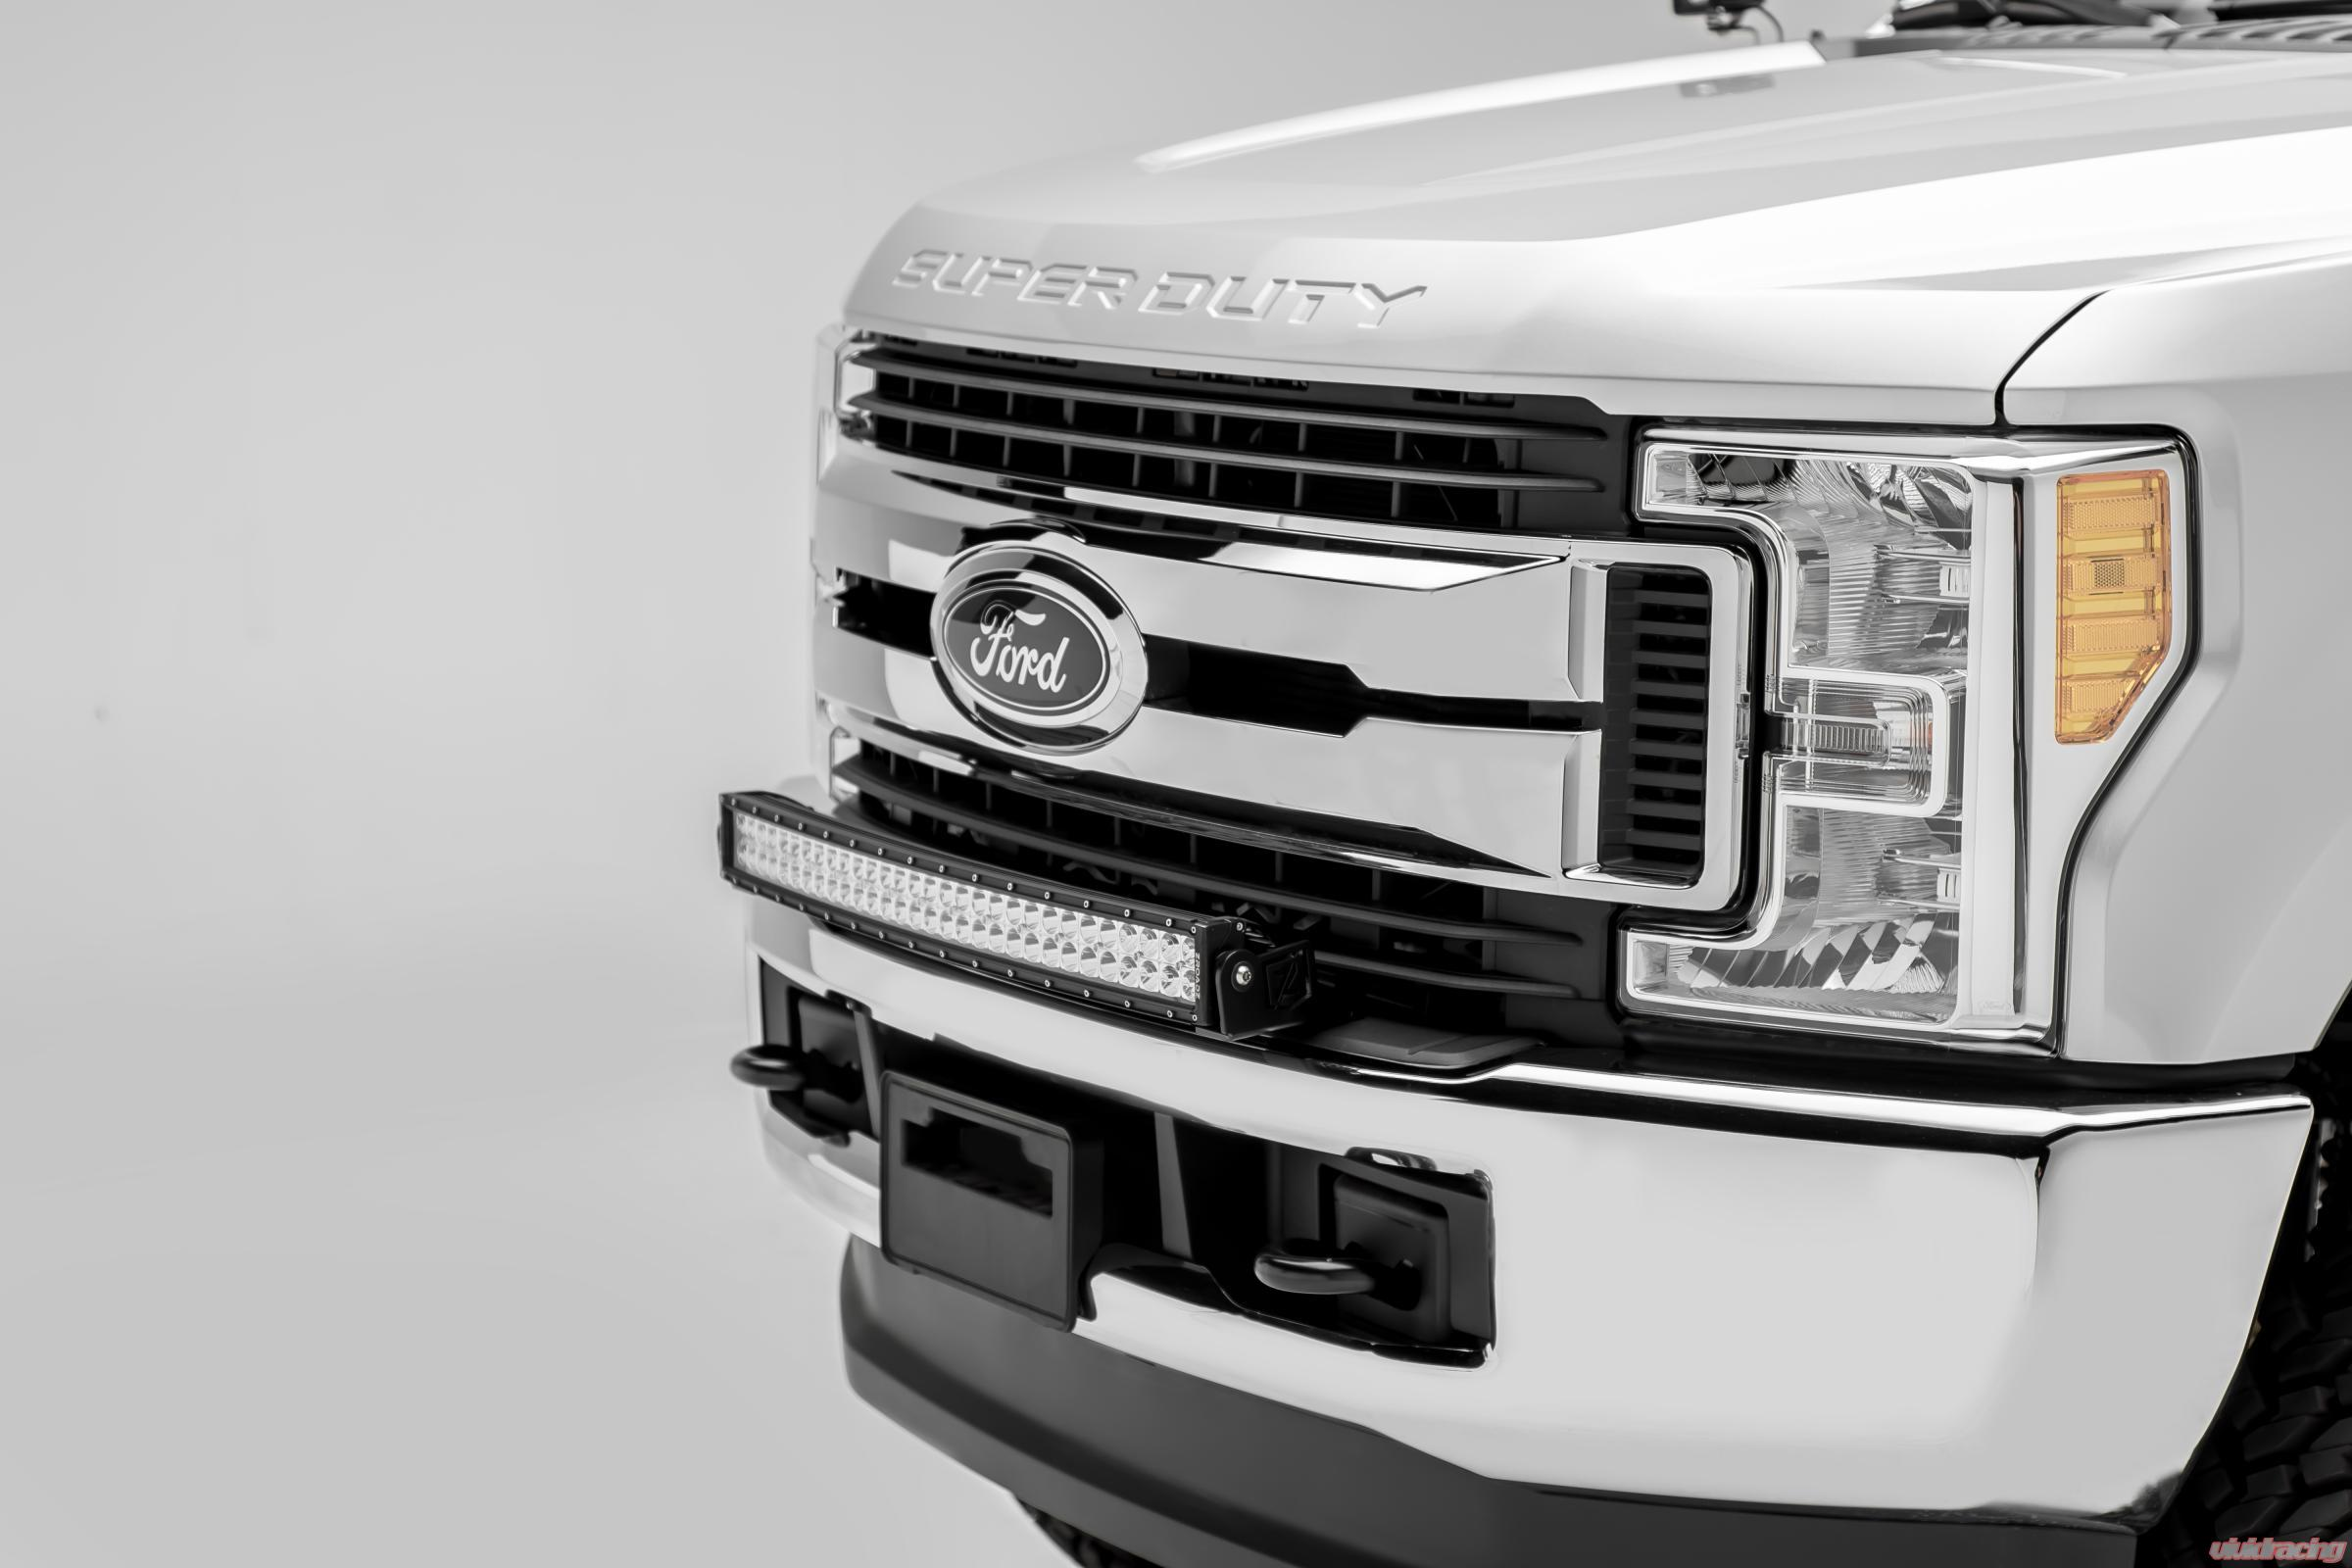 Ford F 250 Harness Free Wiring Diagram For You 2017 Silverado Trailer Z325472 Kit Front Bumper Top Led Light Bar Rh Vividracing Com 150 1999 F250